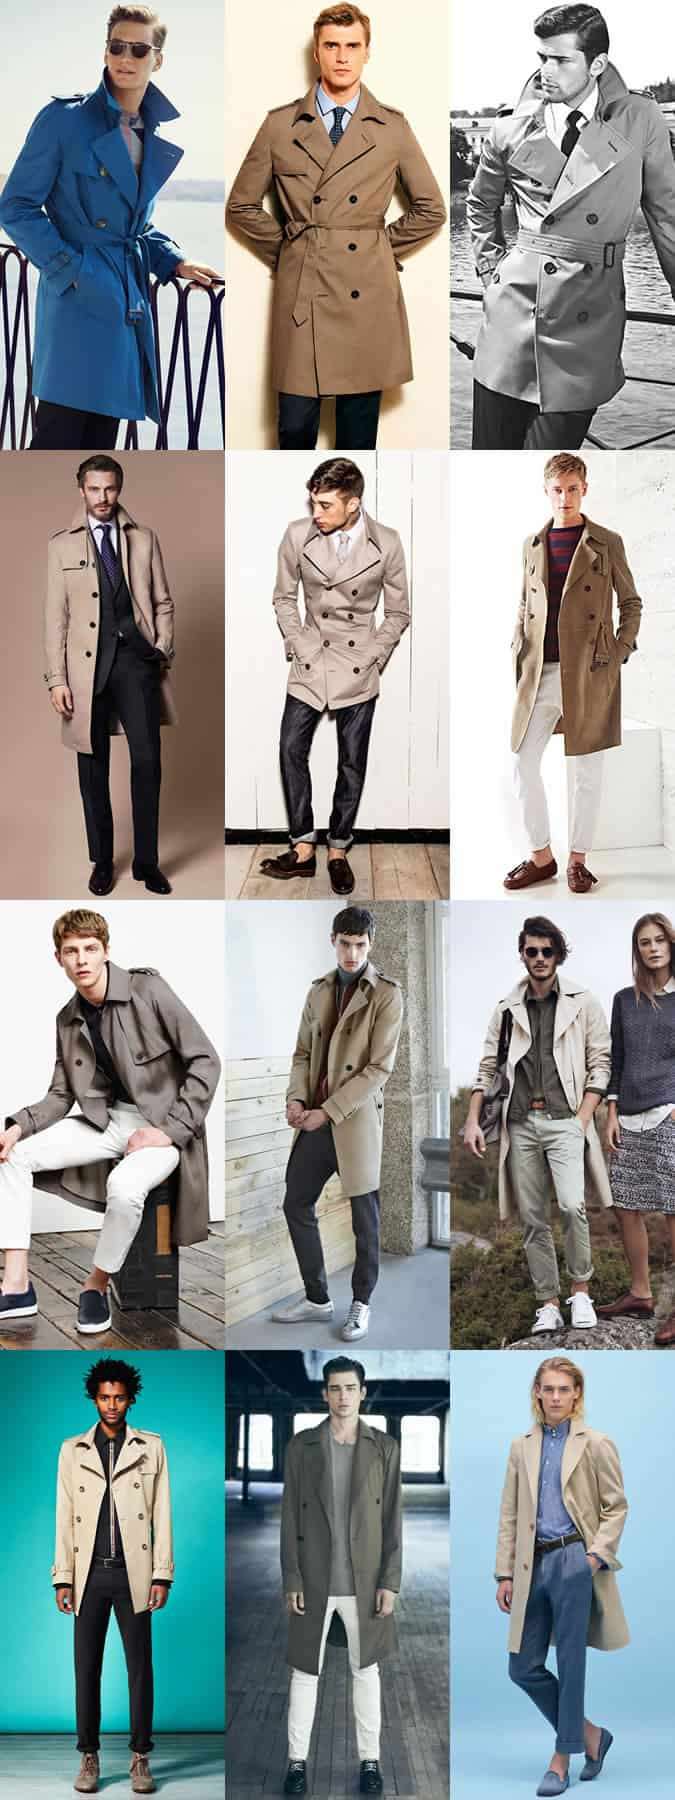 Men's Trench Coats Outfit Inspiration Lookbook